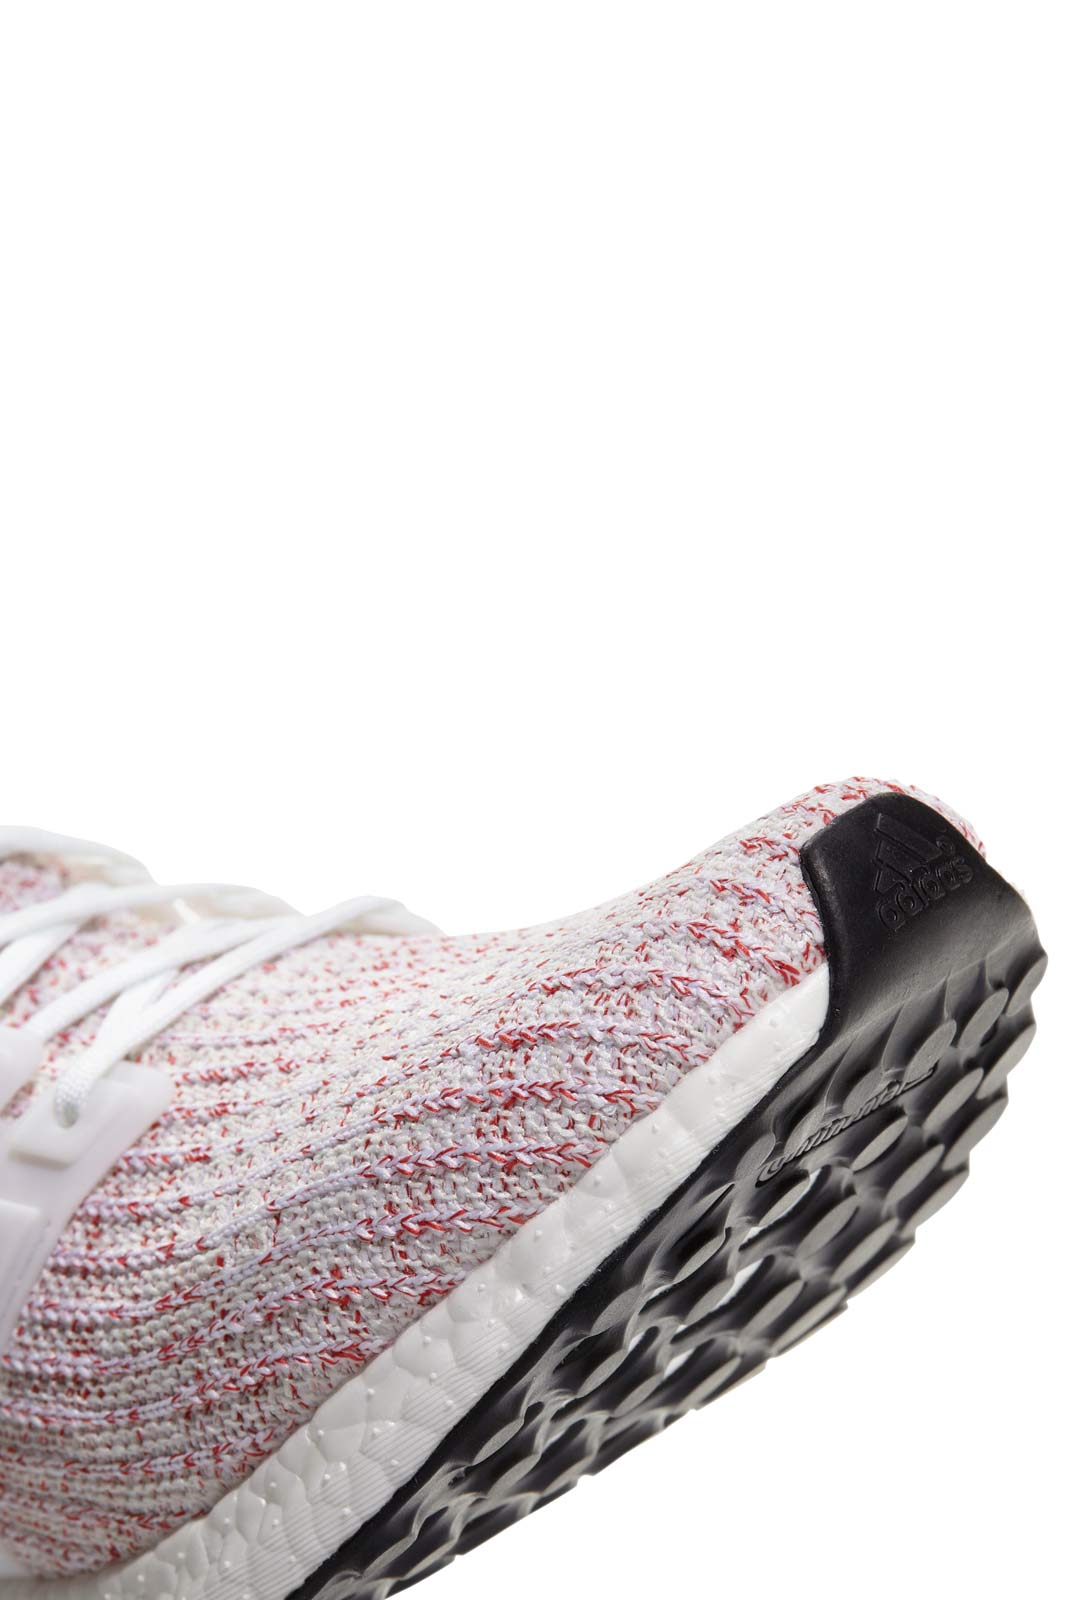 ADIDAS Ultra Boost 4.0 Trainers - Candy Cane - Men's image 4 - The Sports Edit